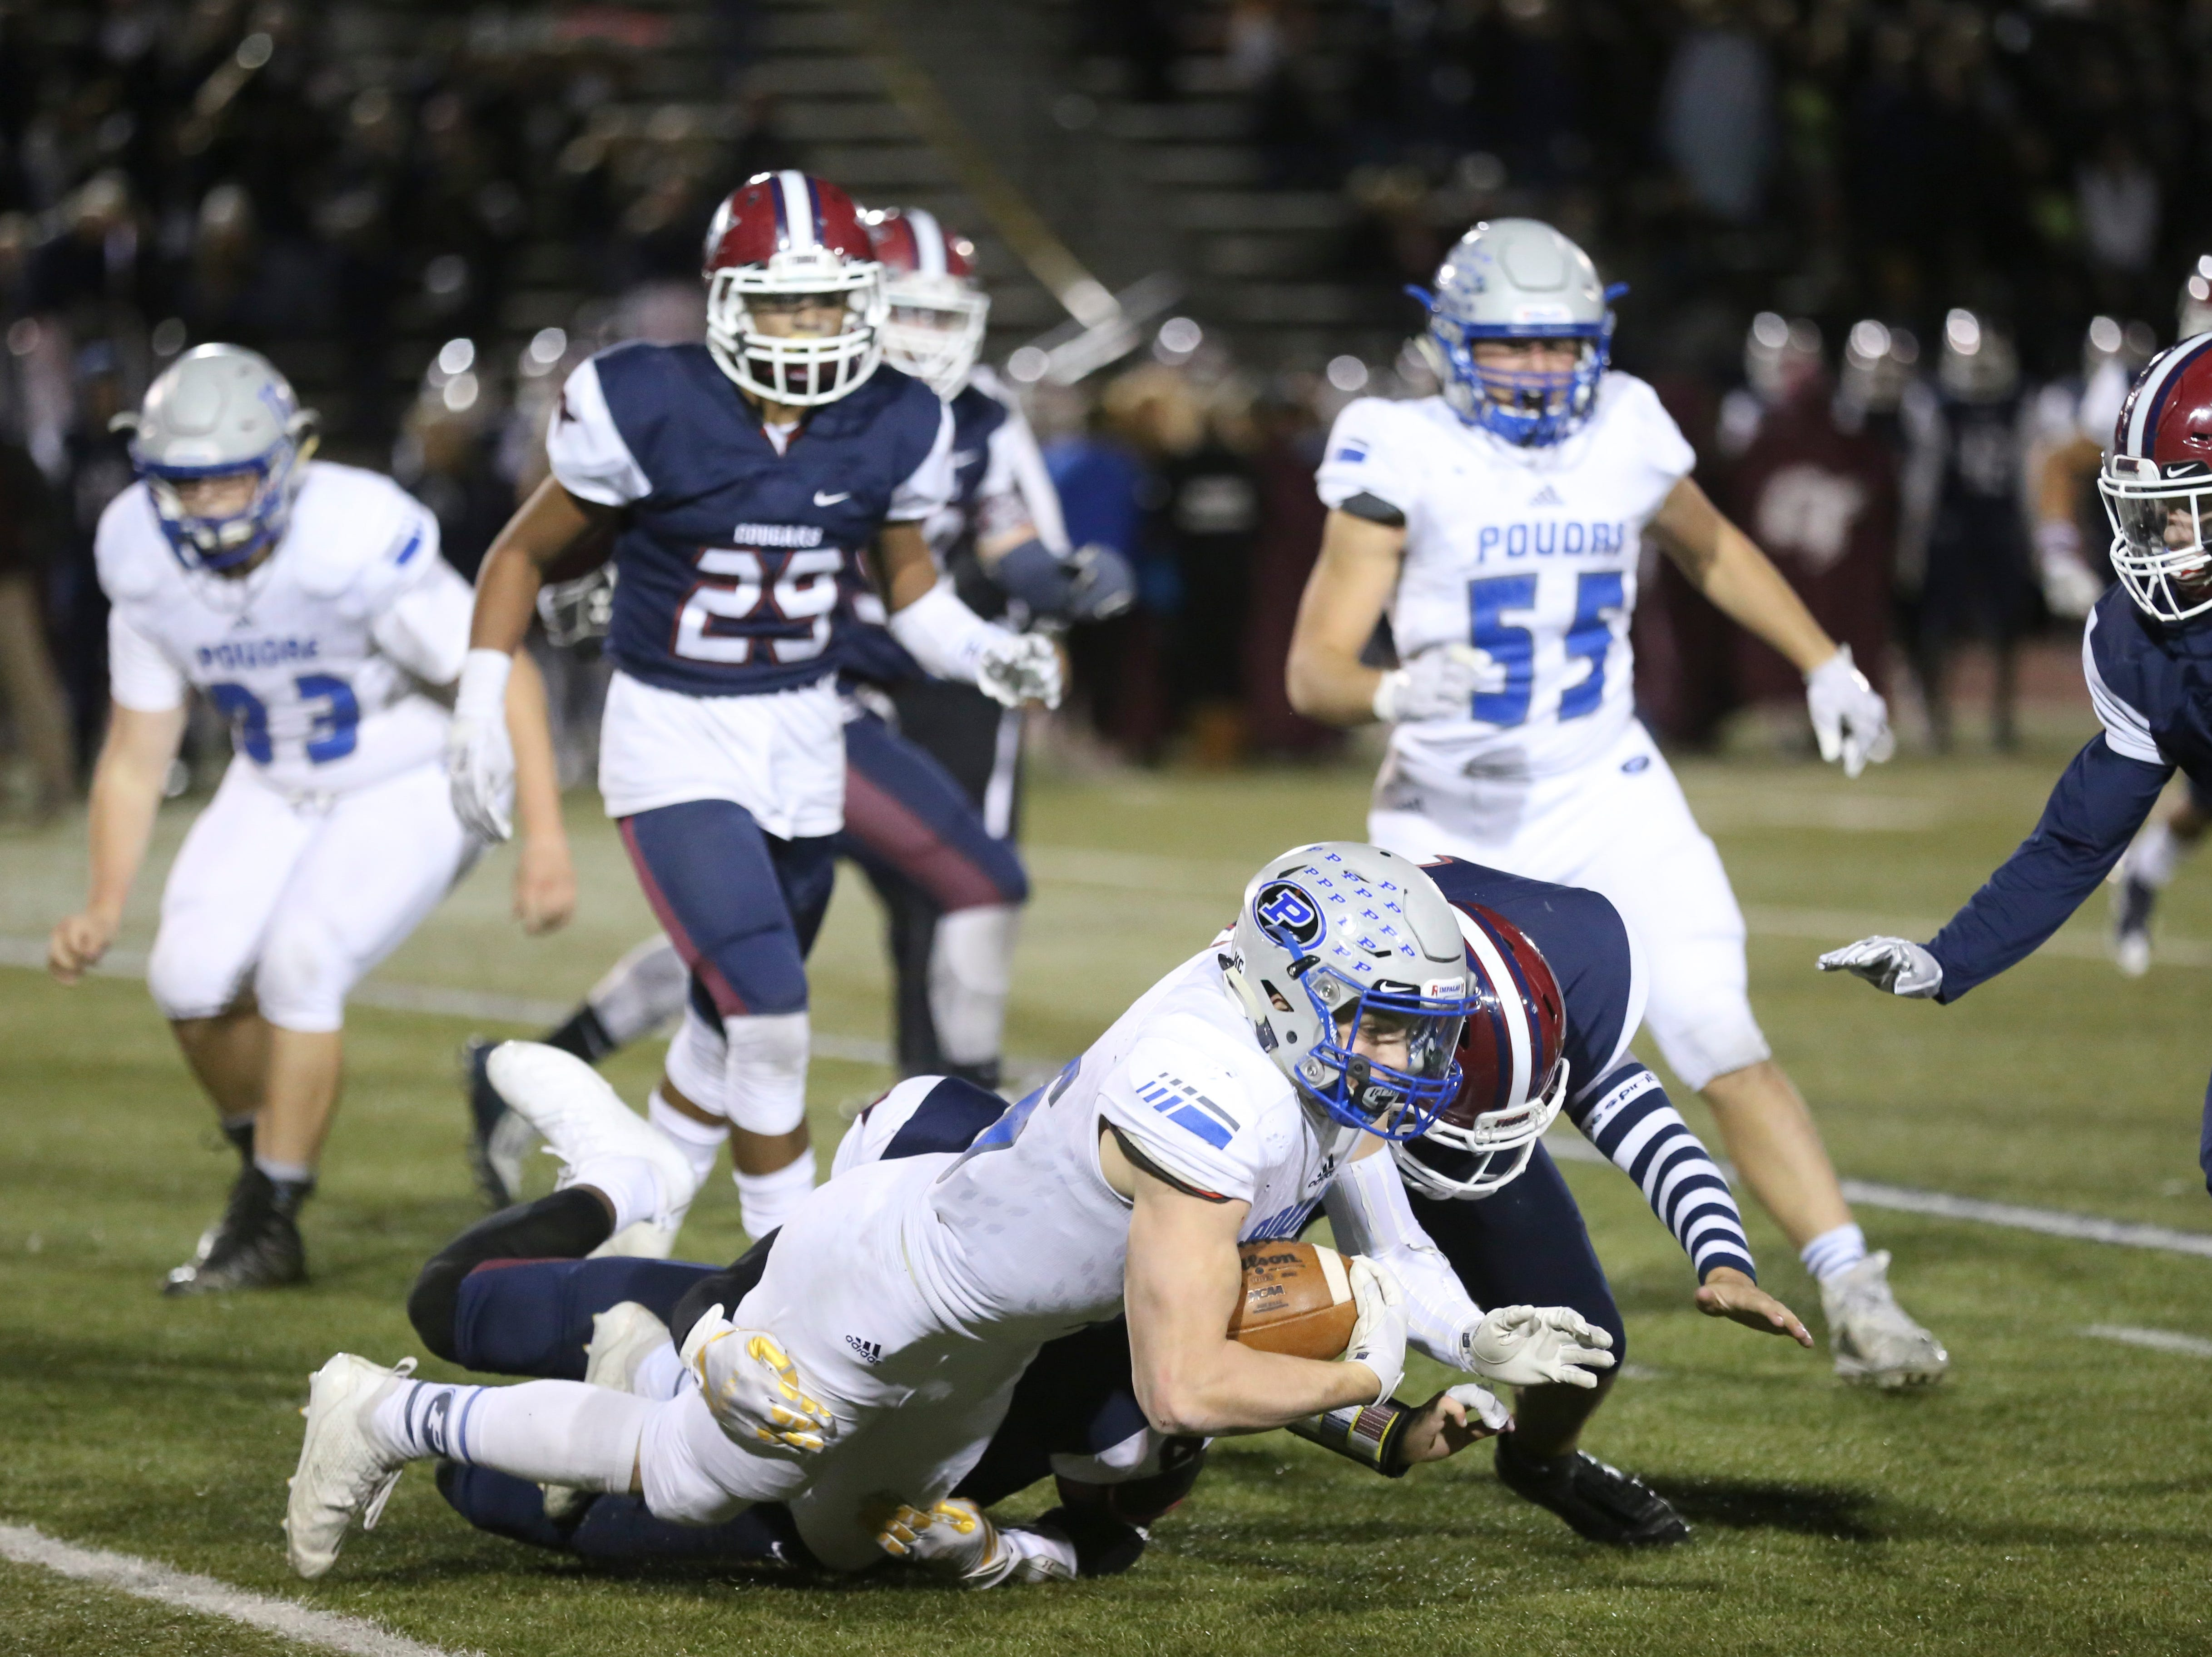 Poudre High School's Tate Satterfield gets tackled by Cherokee Trail High School defenders on Friday evening in Aurora.